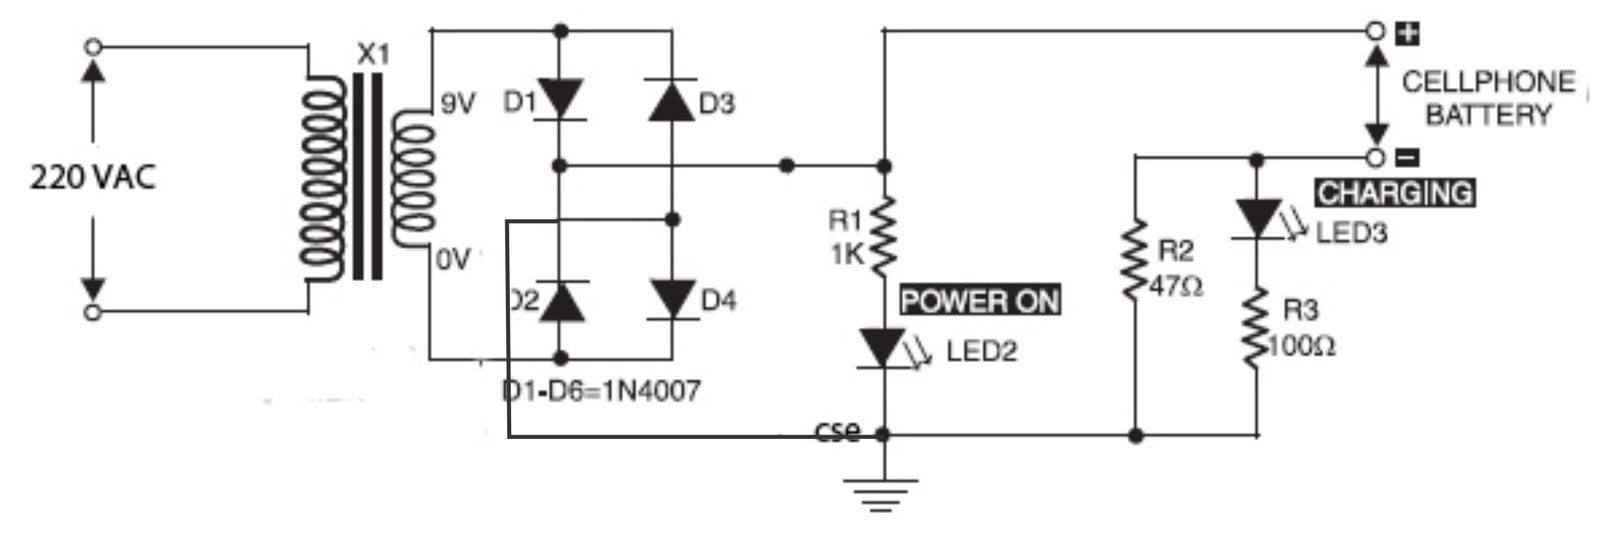 Battery Charger Circuit Page 5 Power Supply Circuits Solar Diagram Phone Schematic